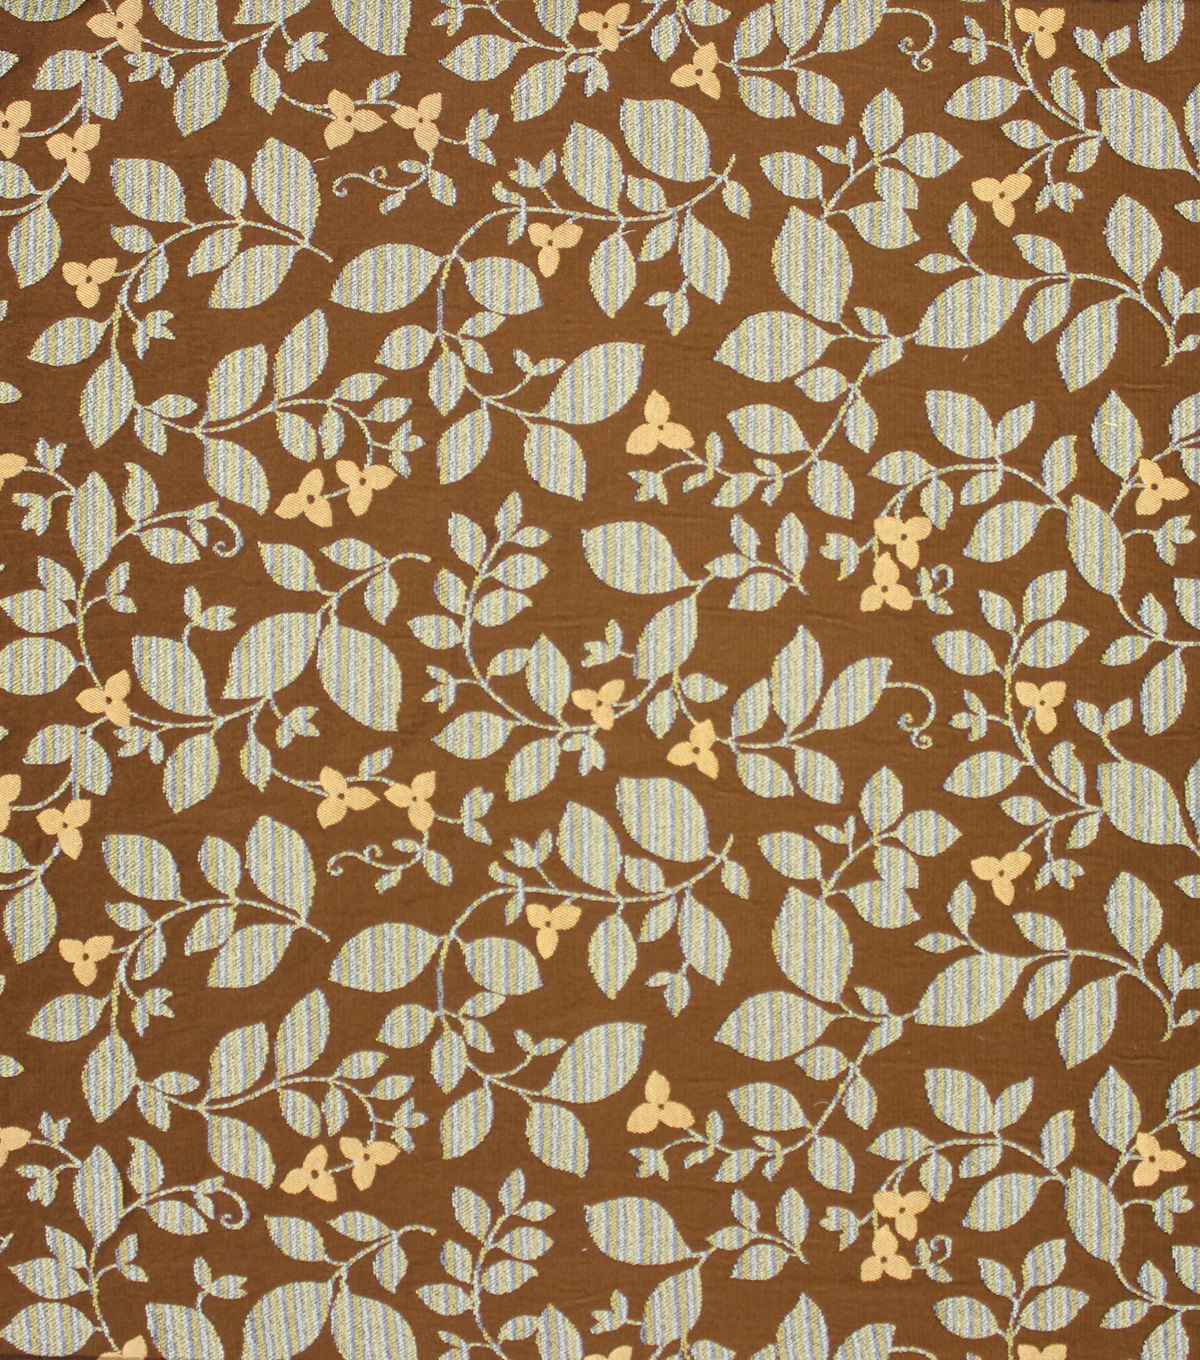 Home Decor 8\u0022x8\u0022 Fabric Swatch-Upholstery Fabric Barrow M7995-5687 Grotto